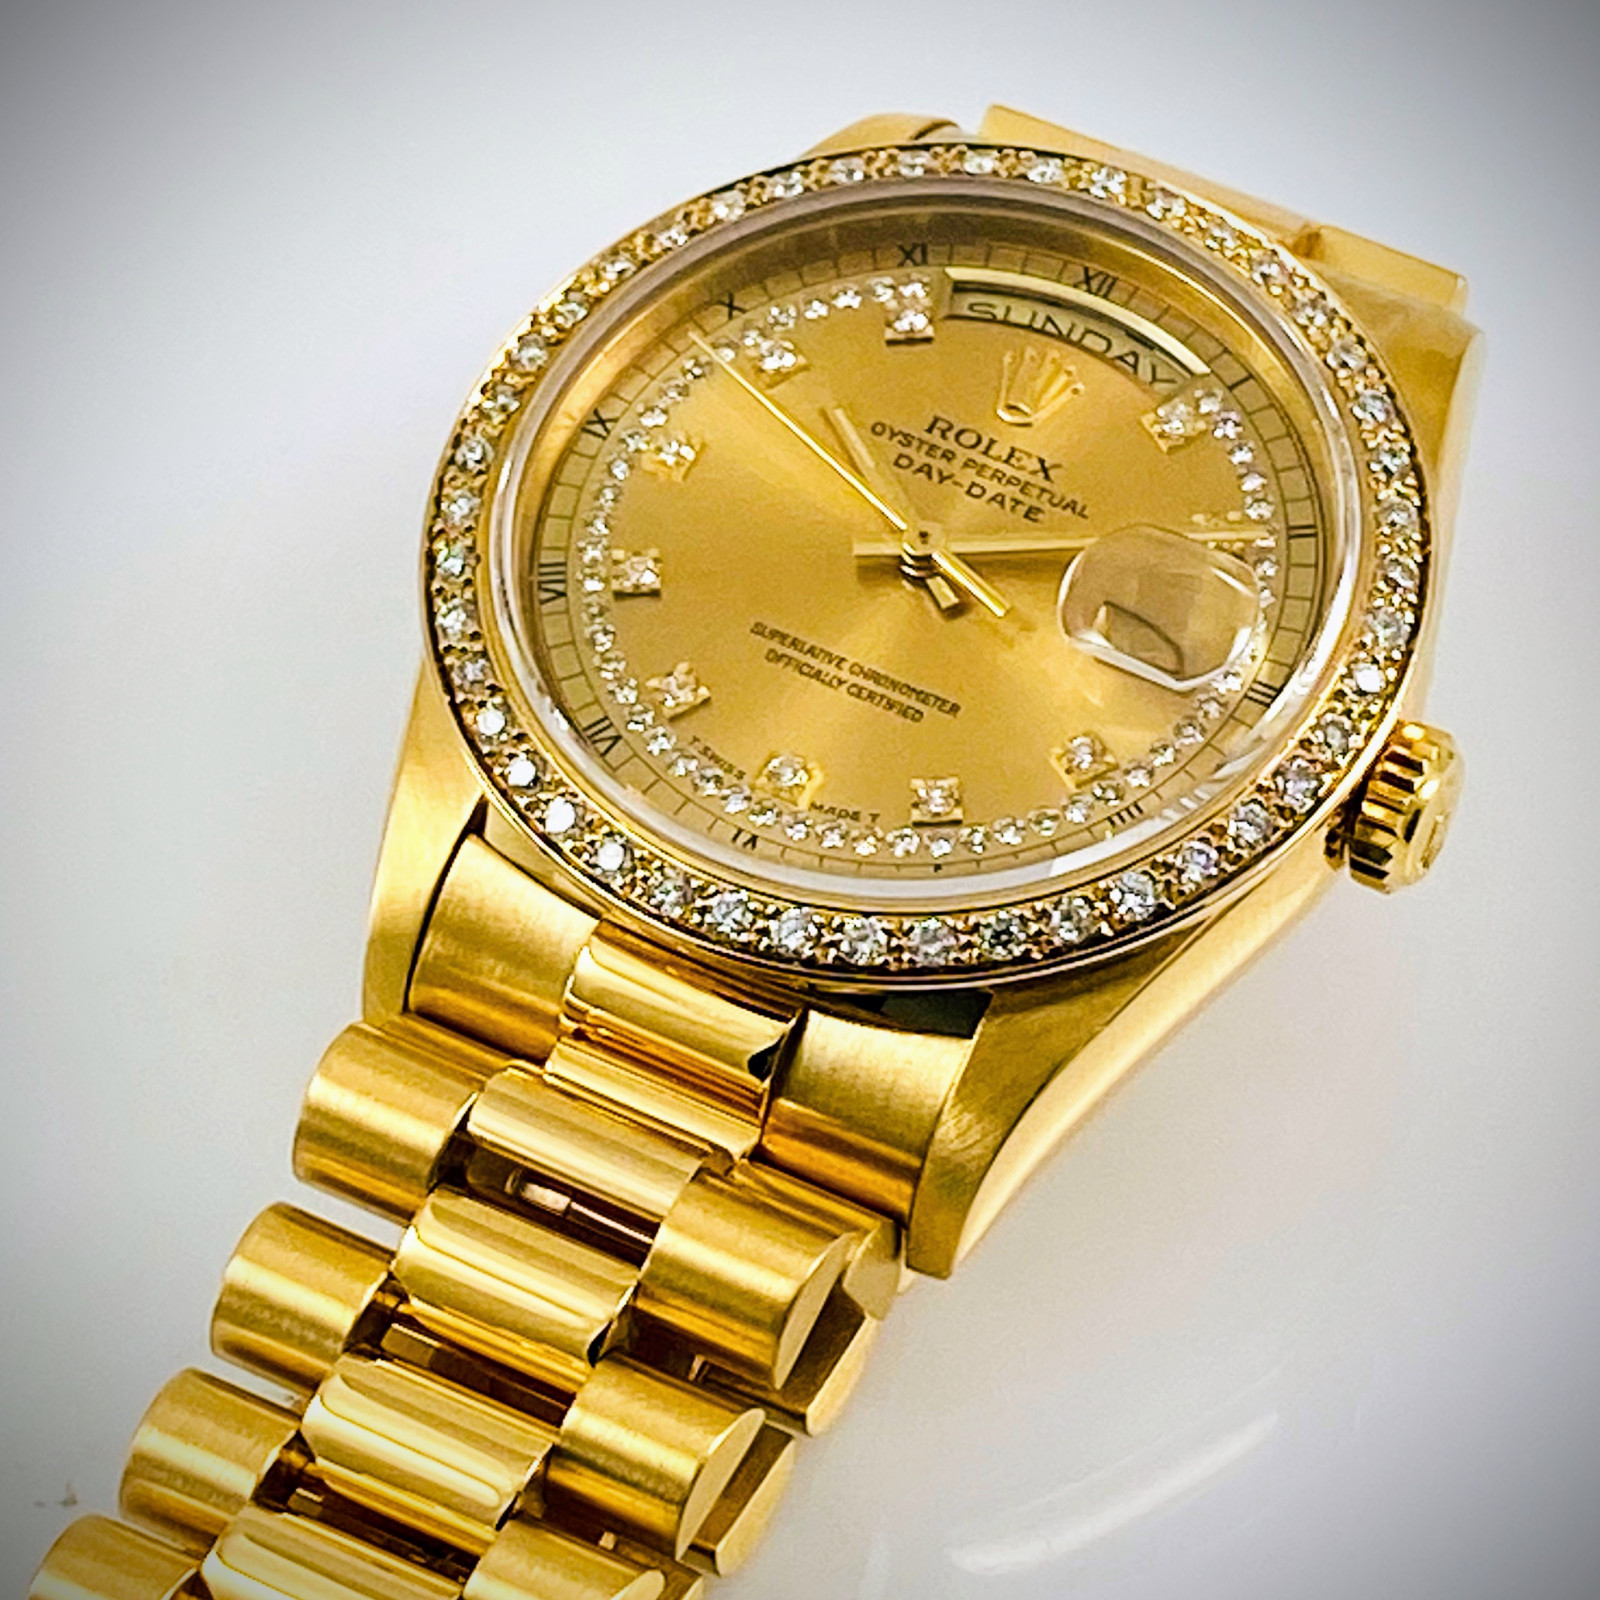 Rolex 18348 Factory Original Diamonds Mint Condition.